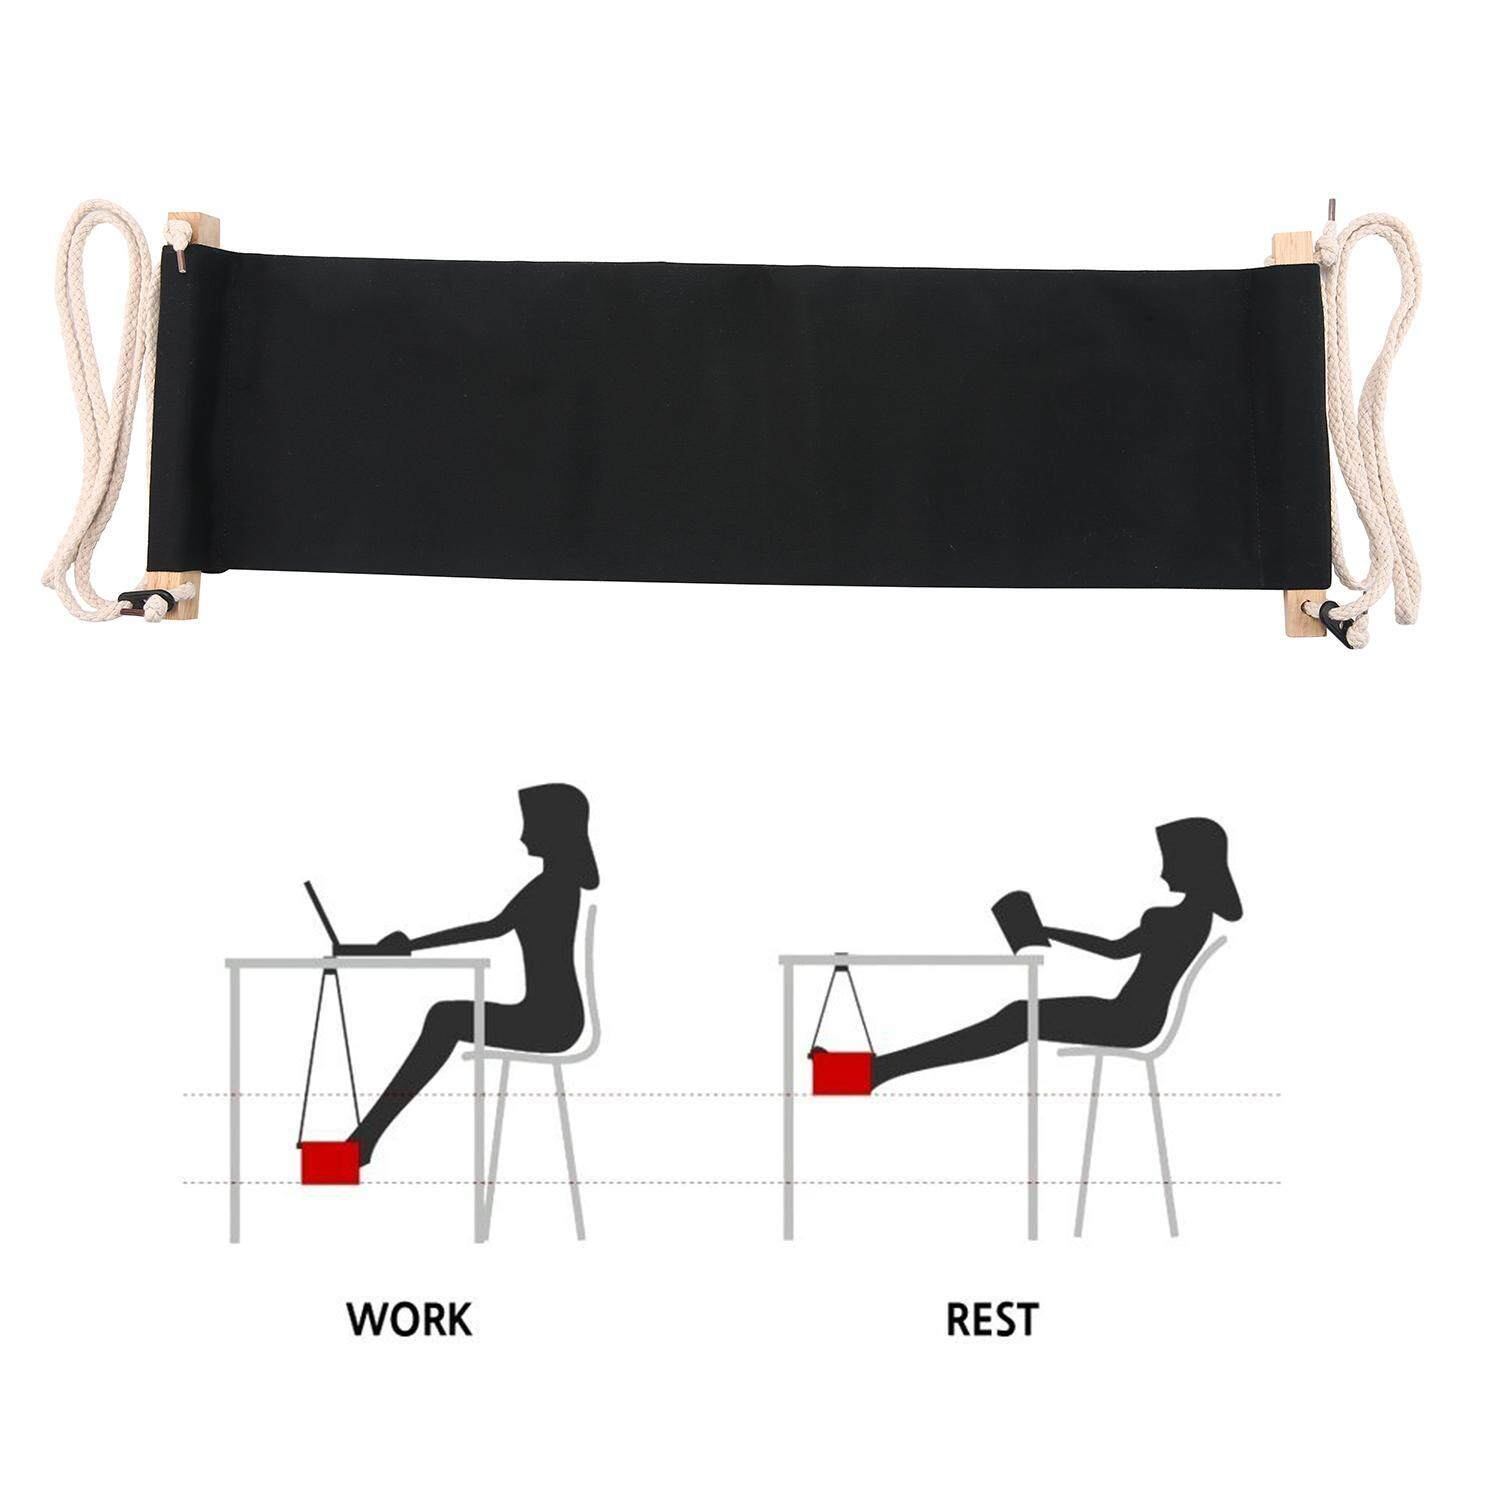 weizhe Portable Adjustable Mini Office Foot Rest Desk Feet Hammock - intl